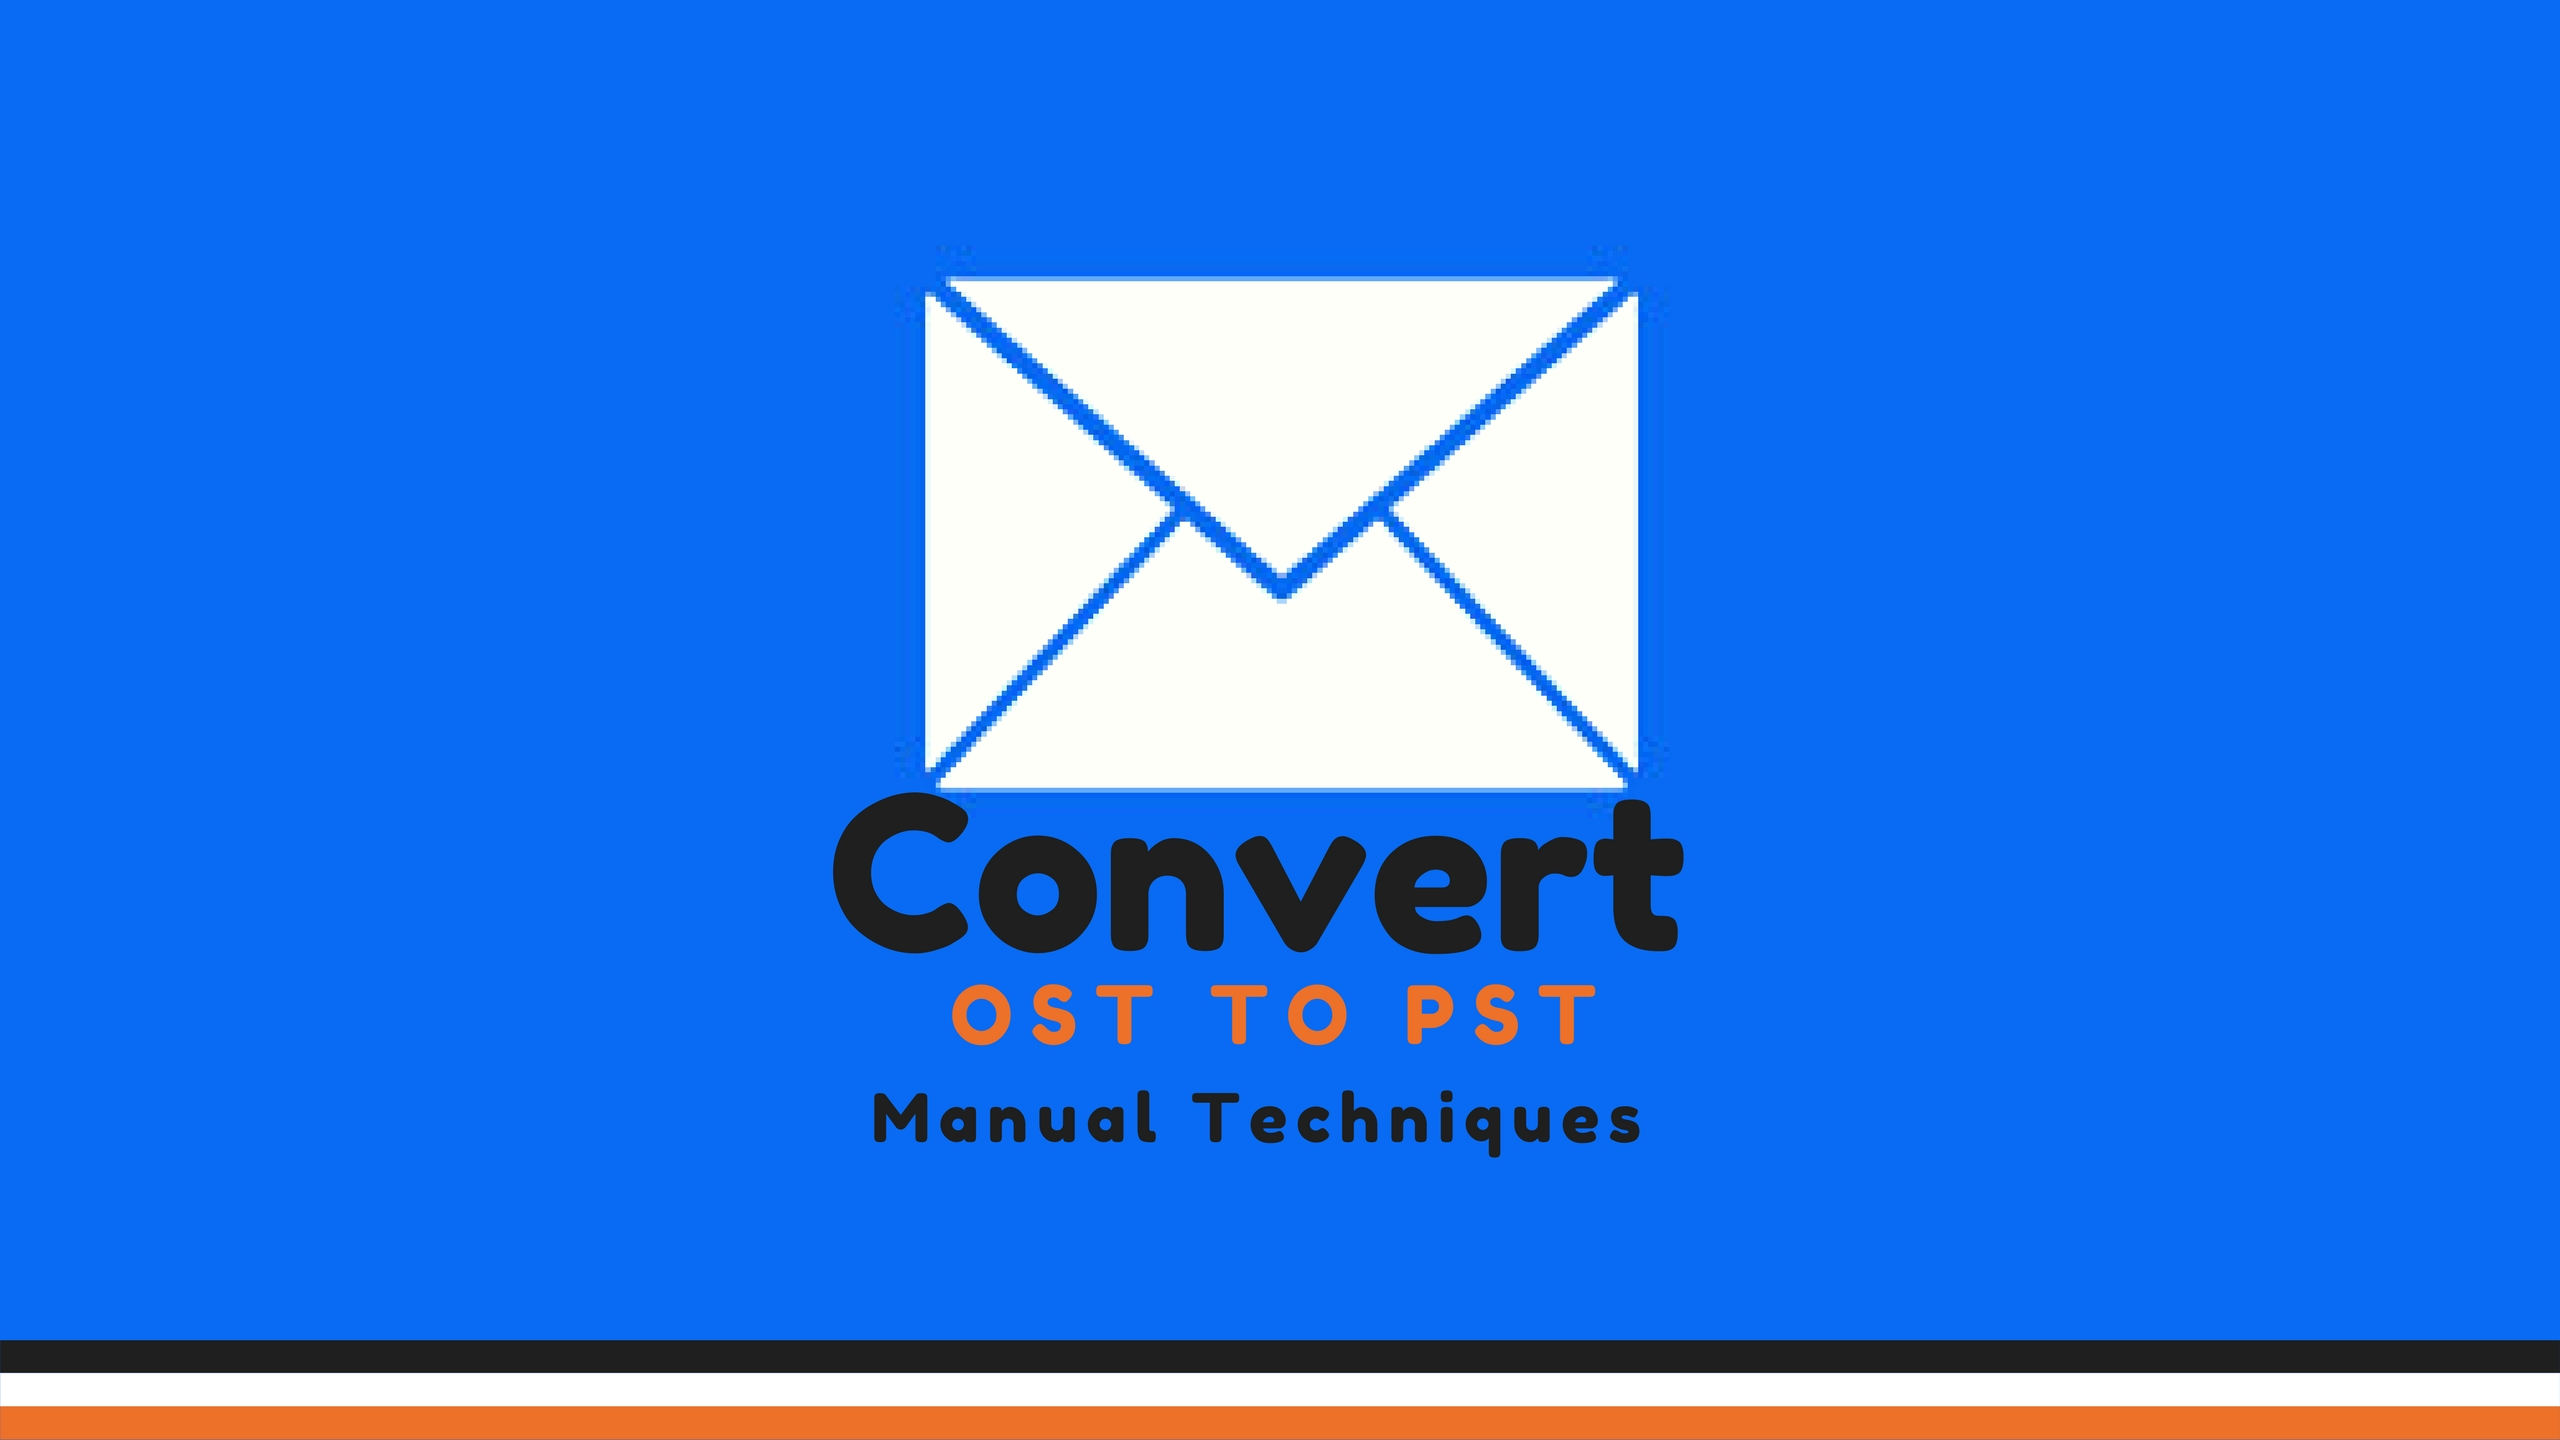 How To Convert OST Files To PST (A Manual Conversion Guide) - Image 1